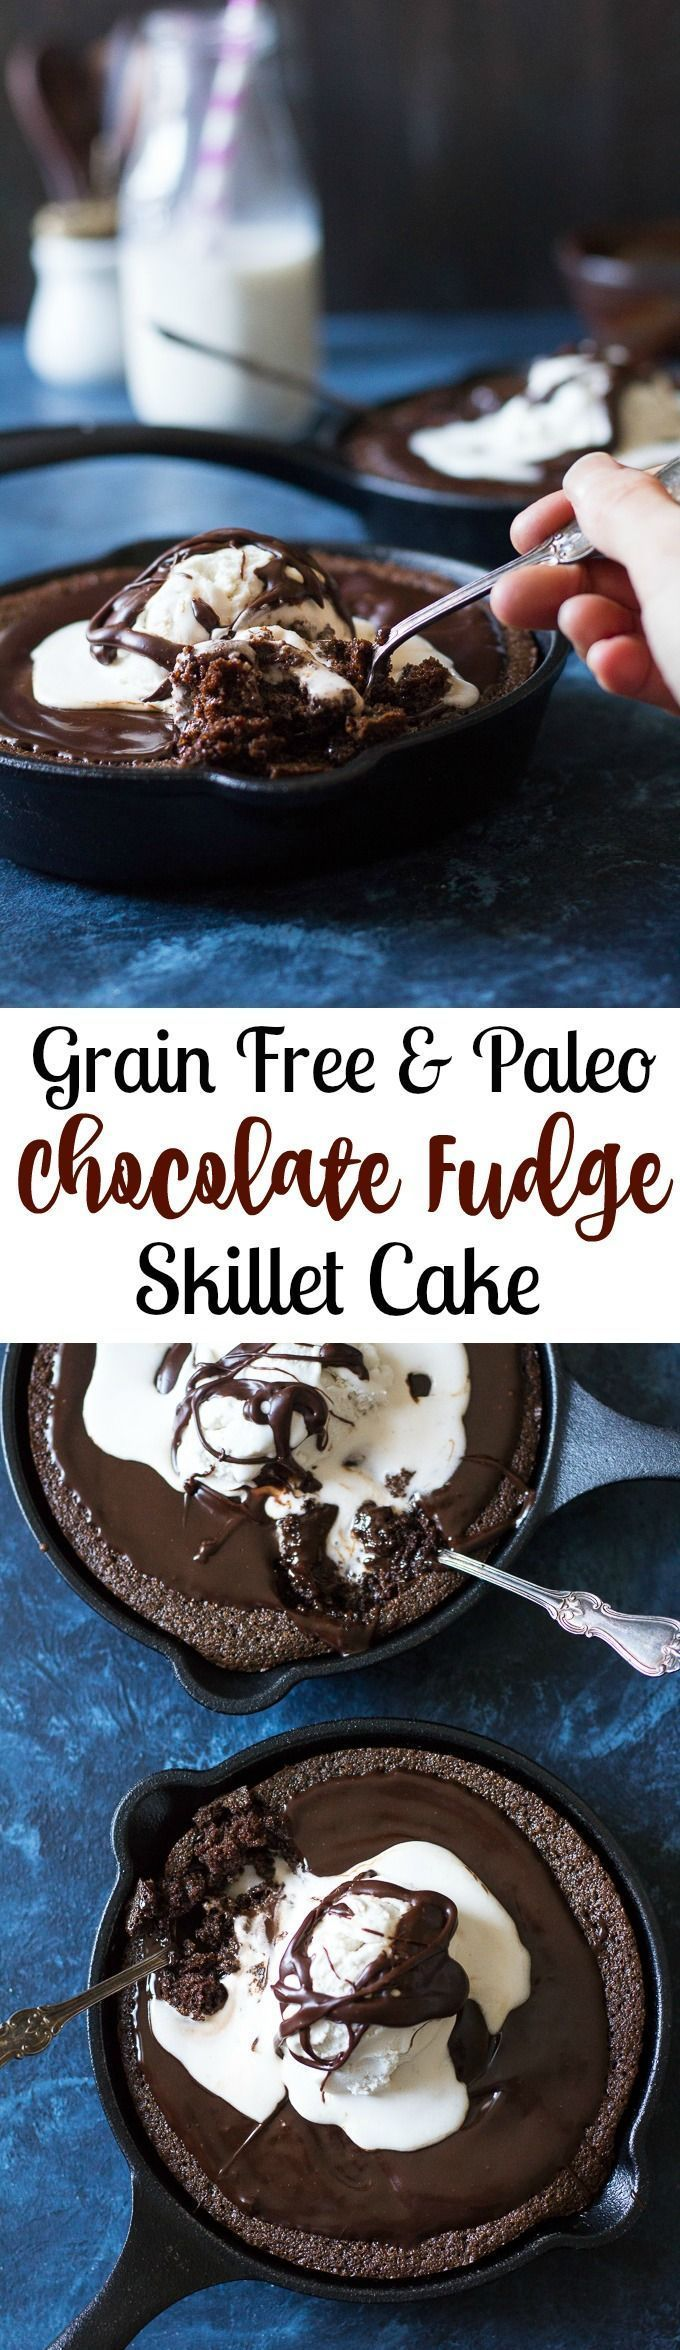 This easy Paleo Chocolate Skillet Cake is super fudgy alone, then topped with hot chocolate fudge and coconut ice cream for a dessert that you won't believe is made with good-for-you ingredients!  Gluten free, grain free, dairy free and kid friendly.